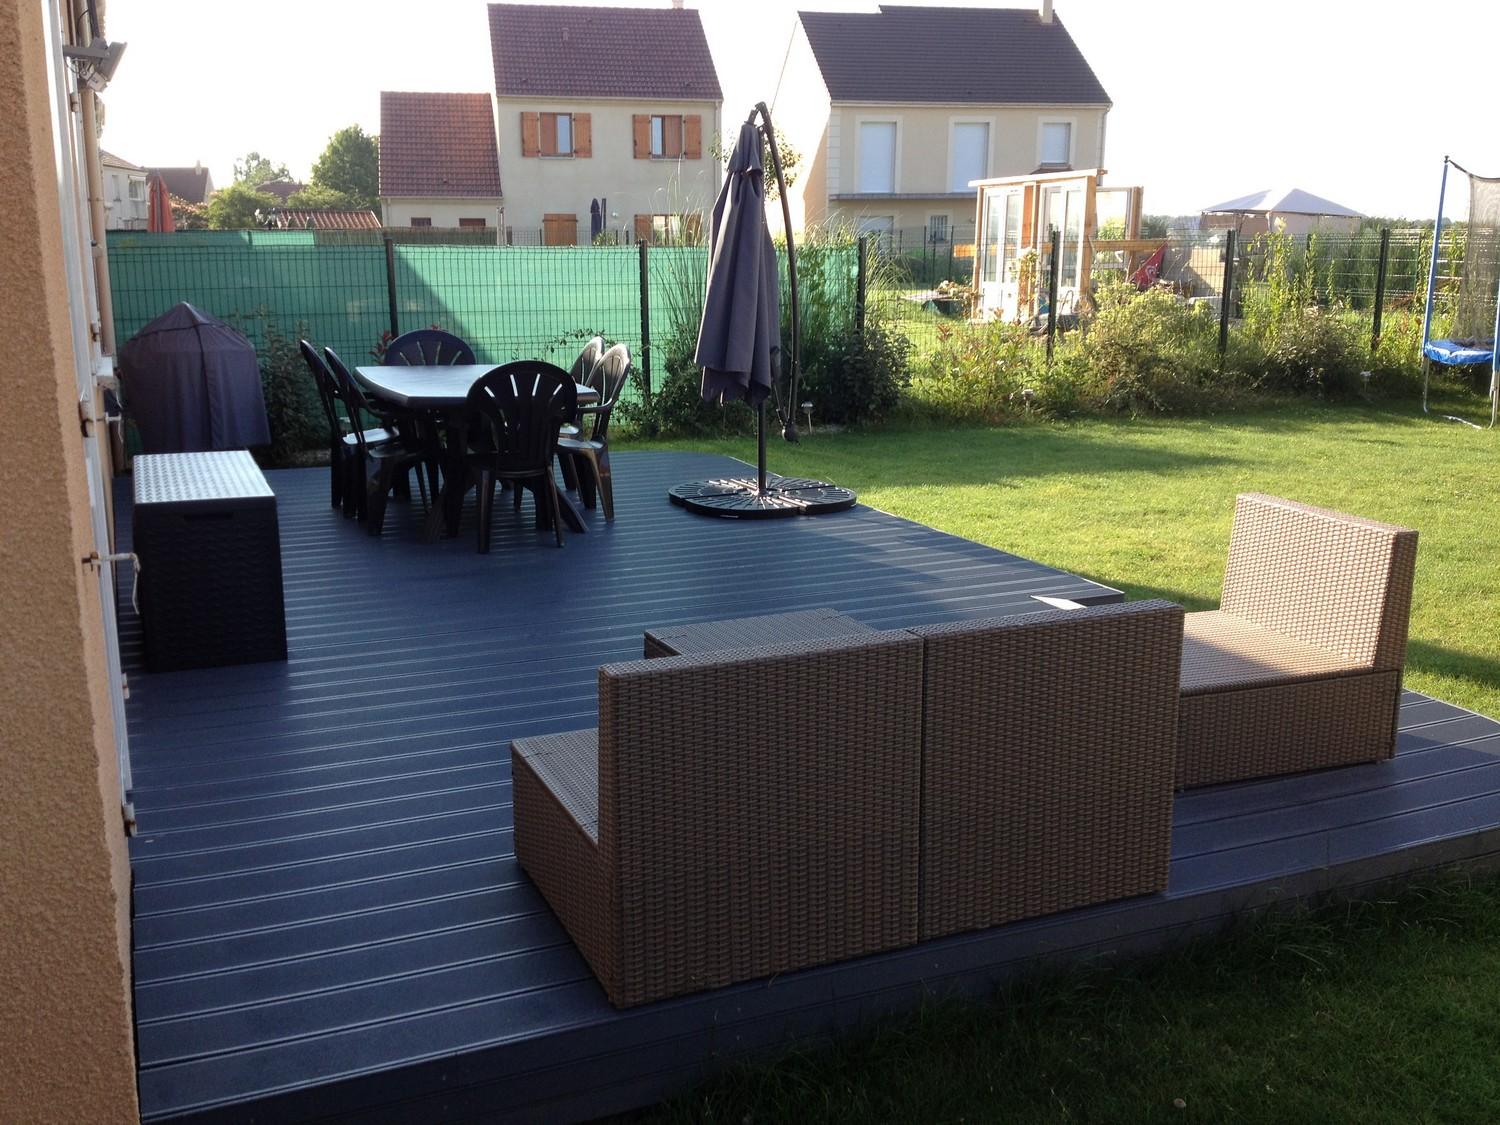 Lame Terrasse Composite Gris Anthracite Lame Terrasse Bois Gris. Cliquez With Lame Terrasse Bois